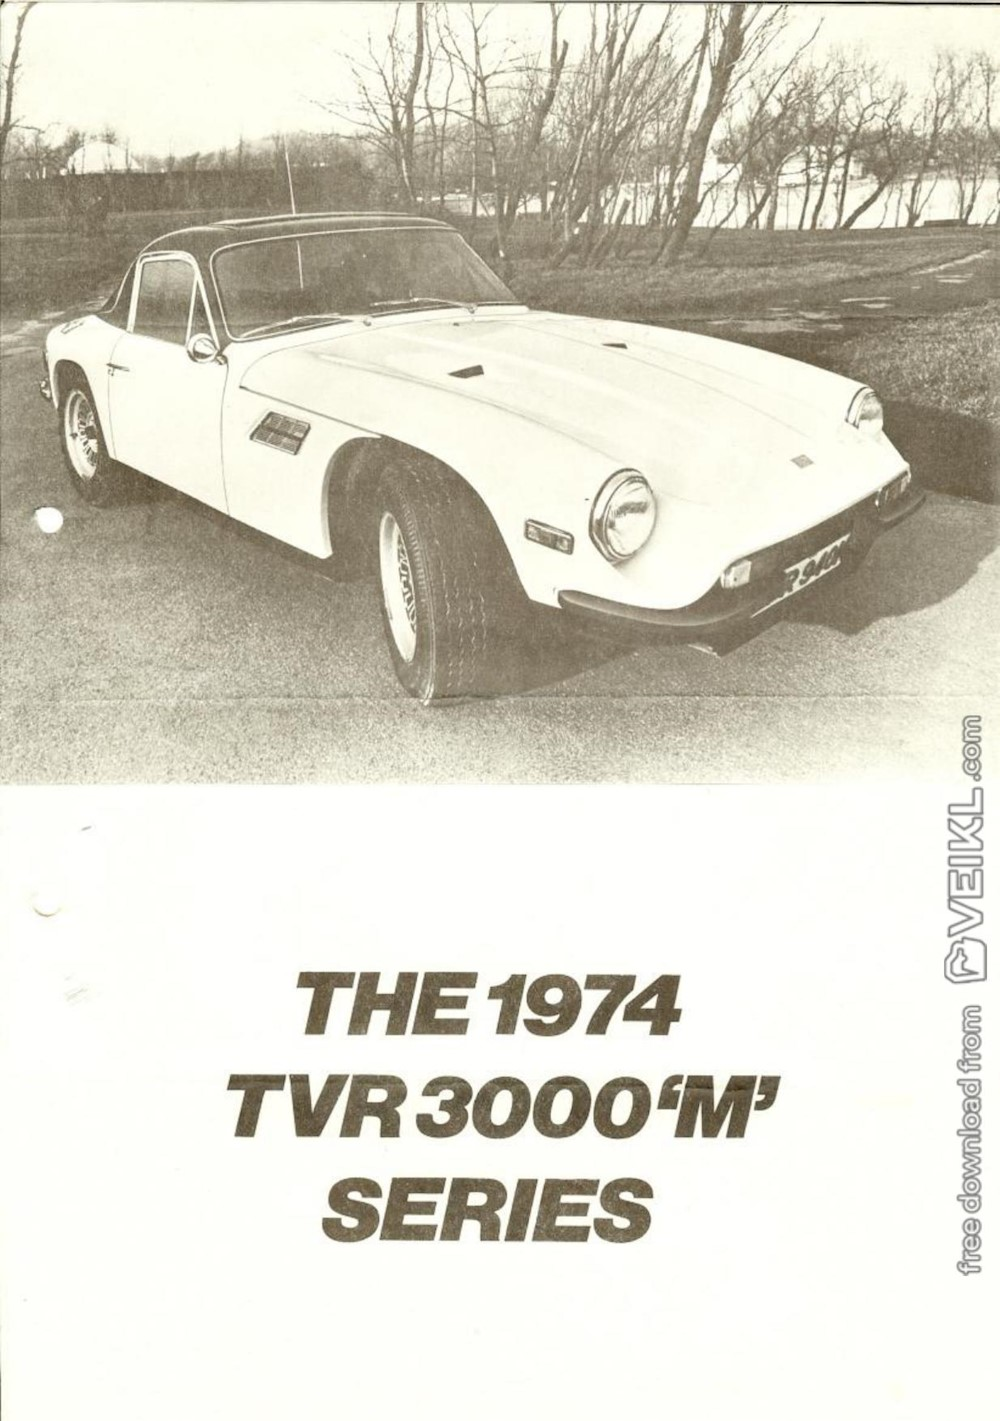 TVR 3000 M Series Brochure 1974 EN